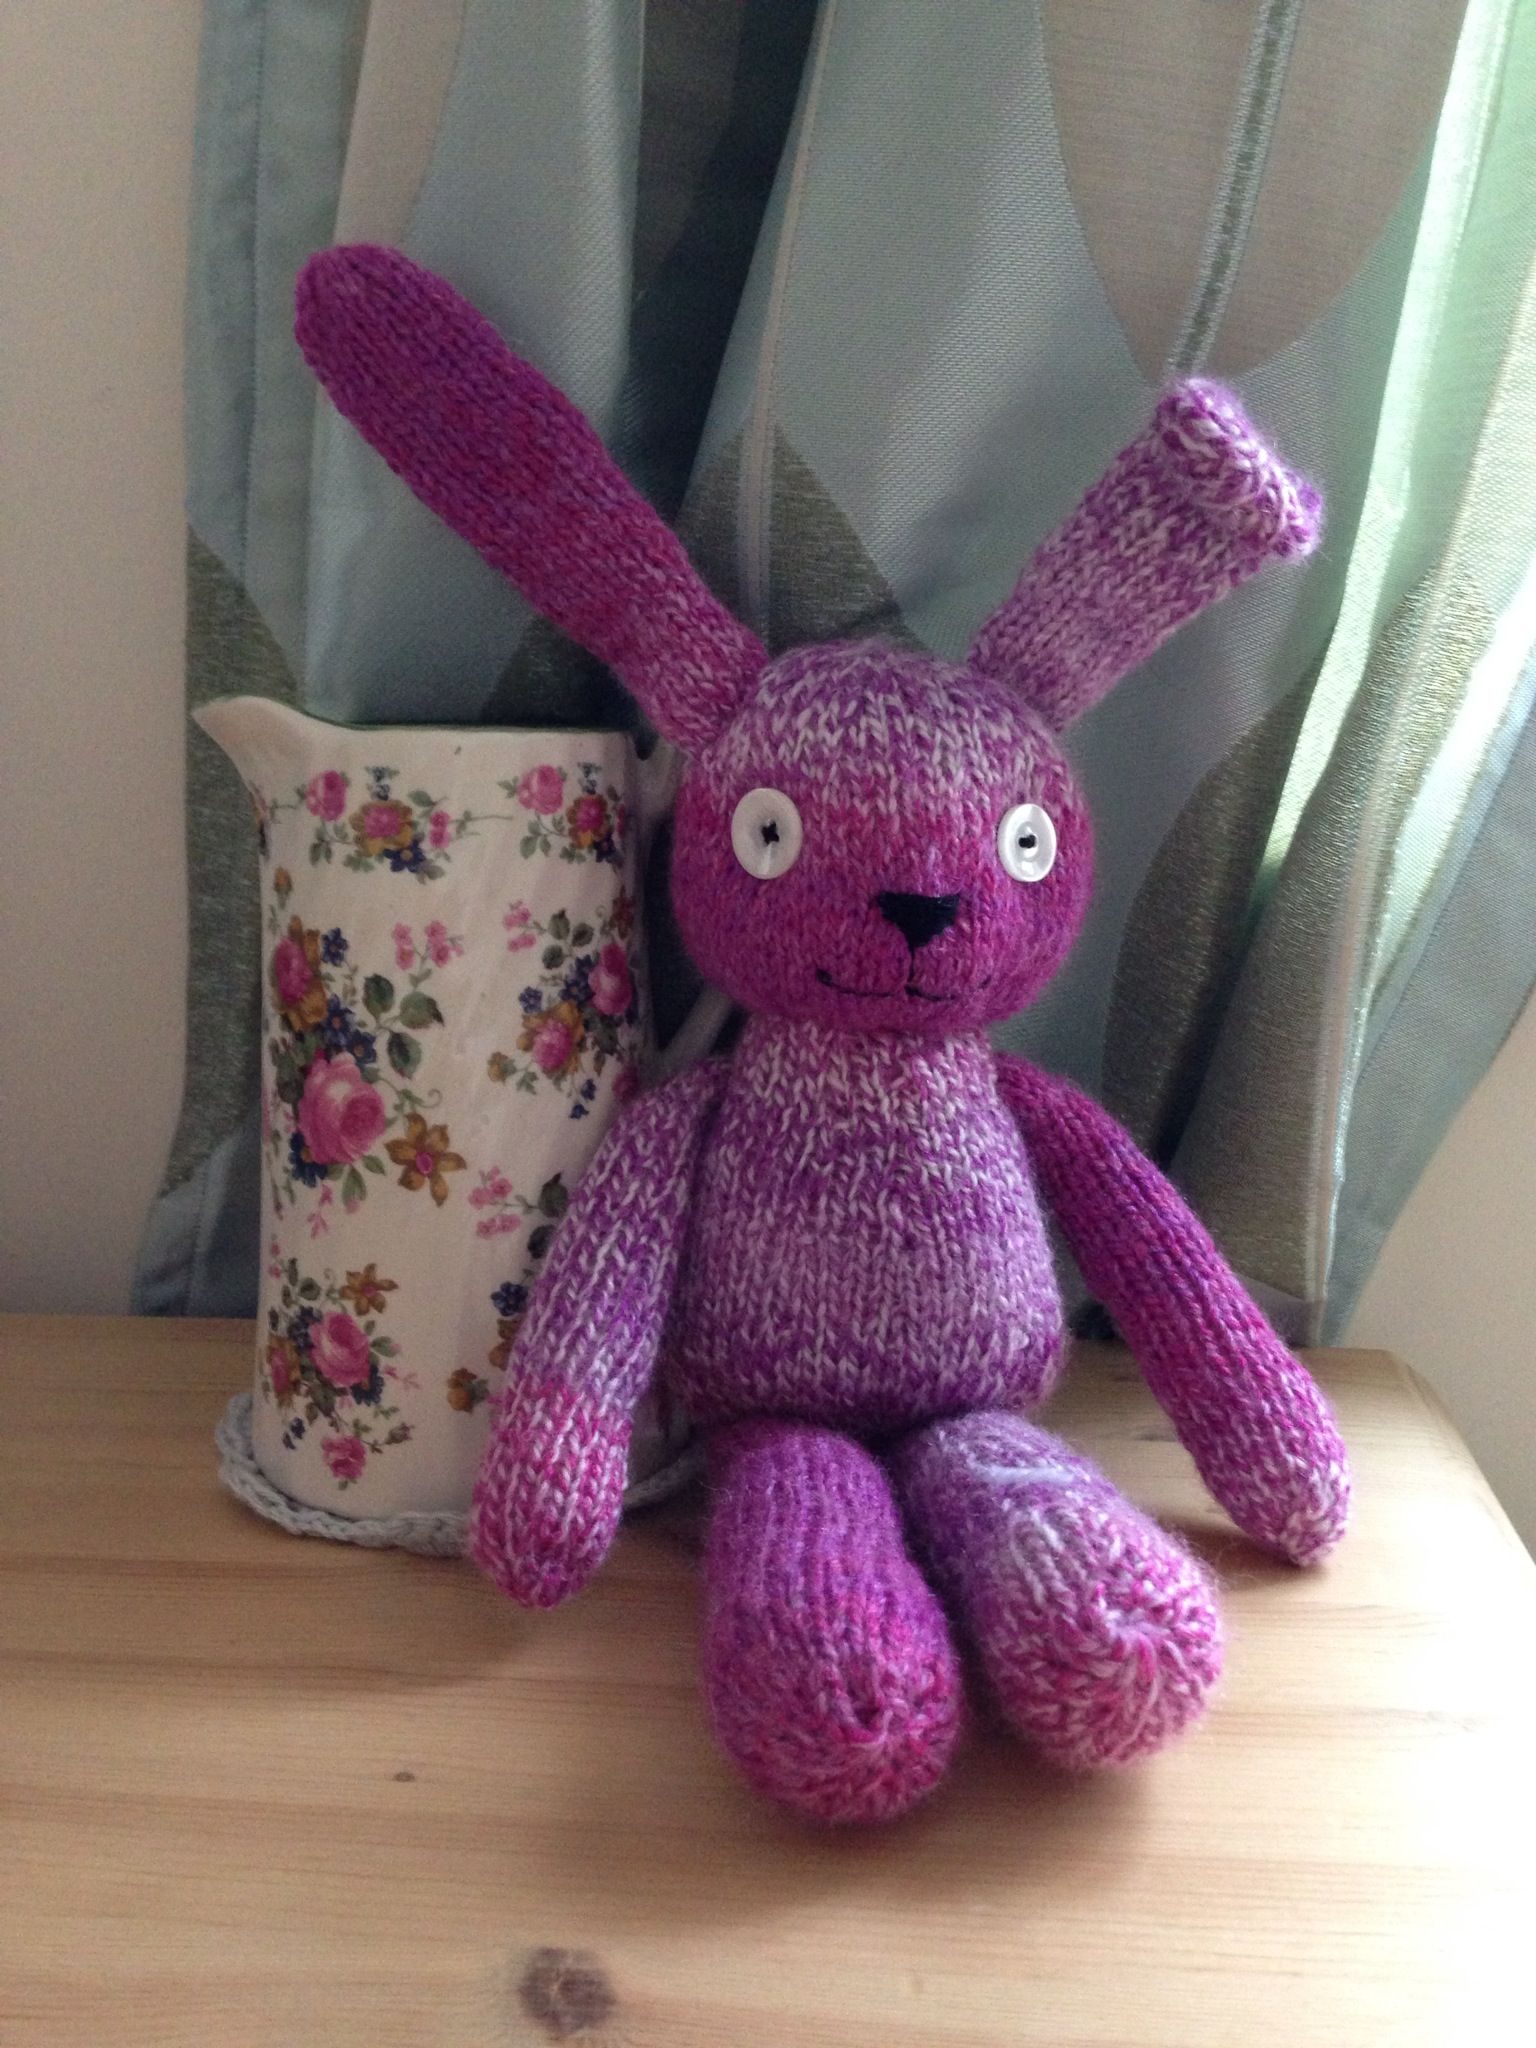 Knitted rabbit. Designed and made by Mama T. Www.facebook.com/MamaTsCraftyCreations